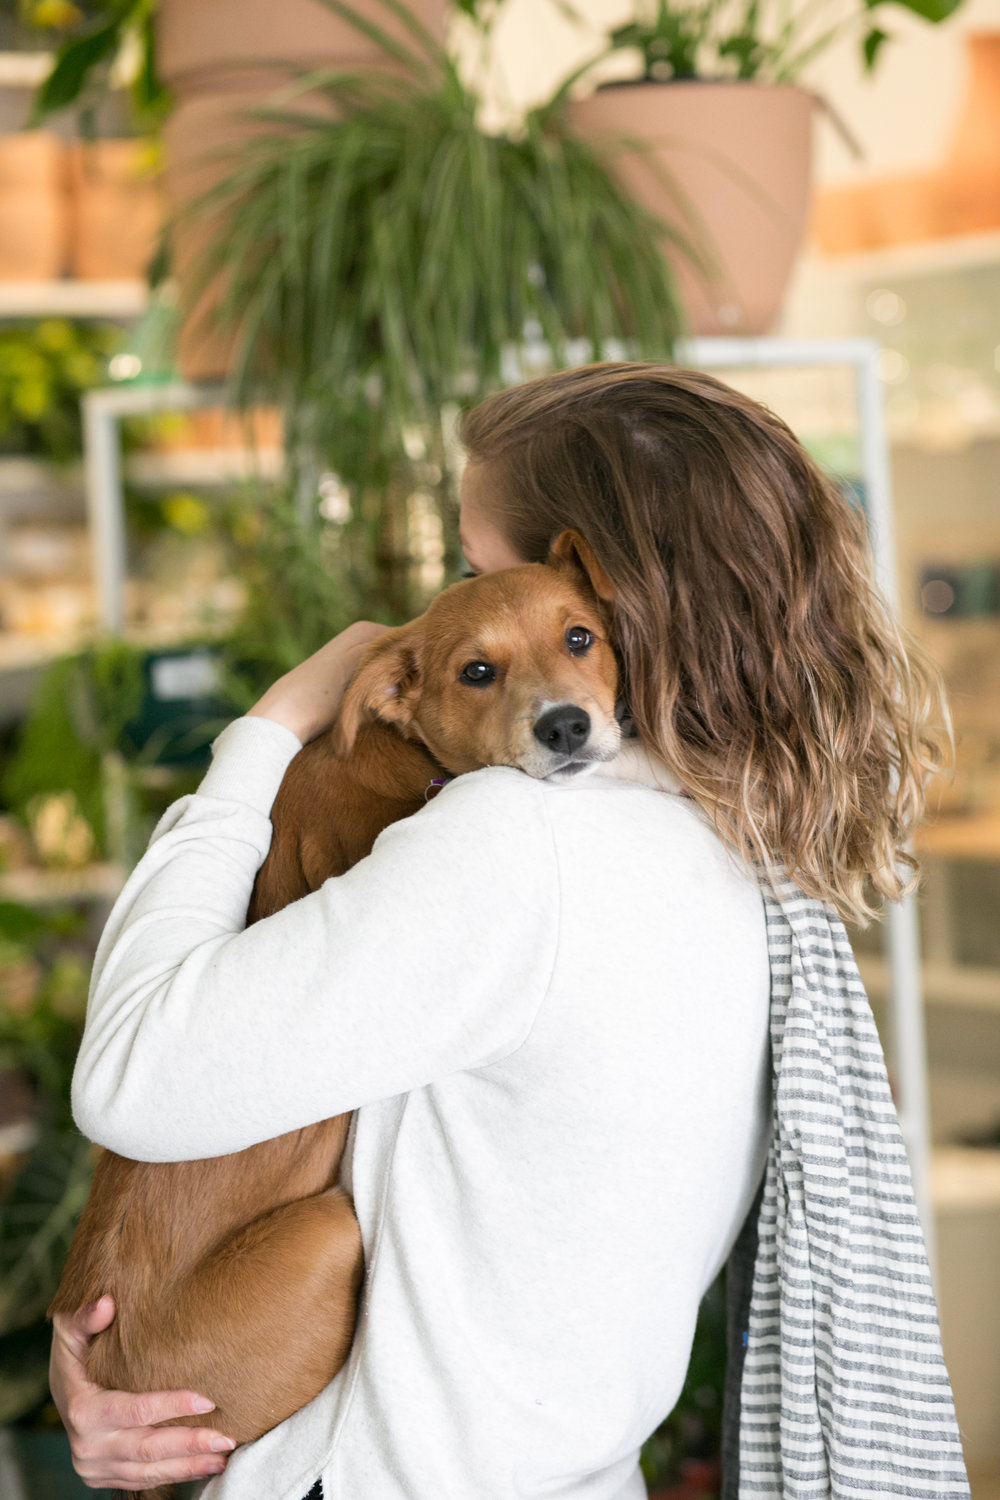 Keep your fur children safe with our top picks for pet friendly plants.